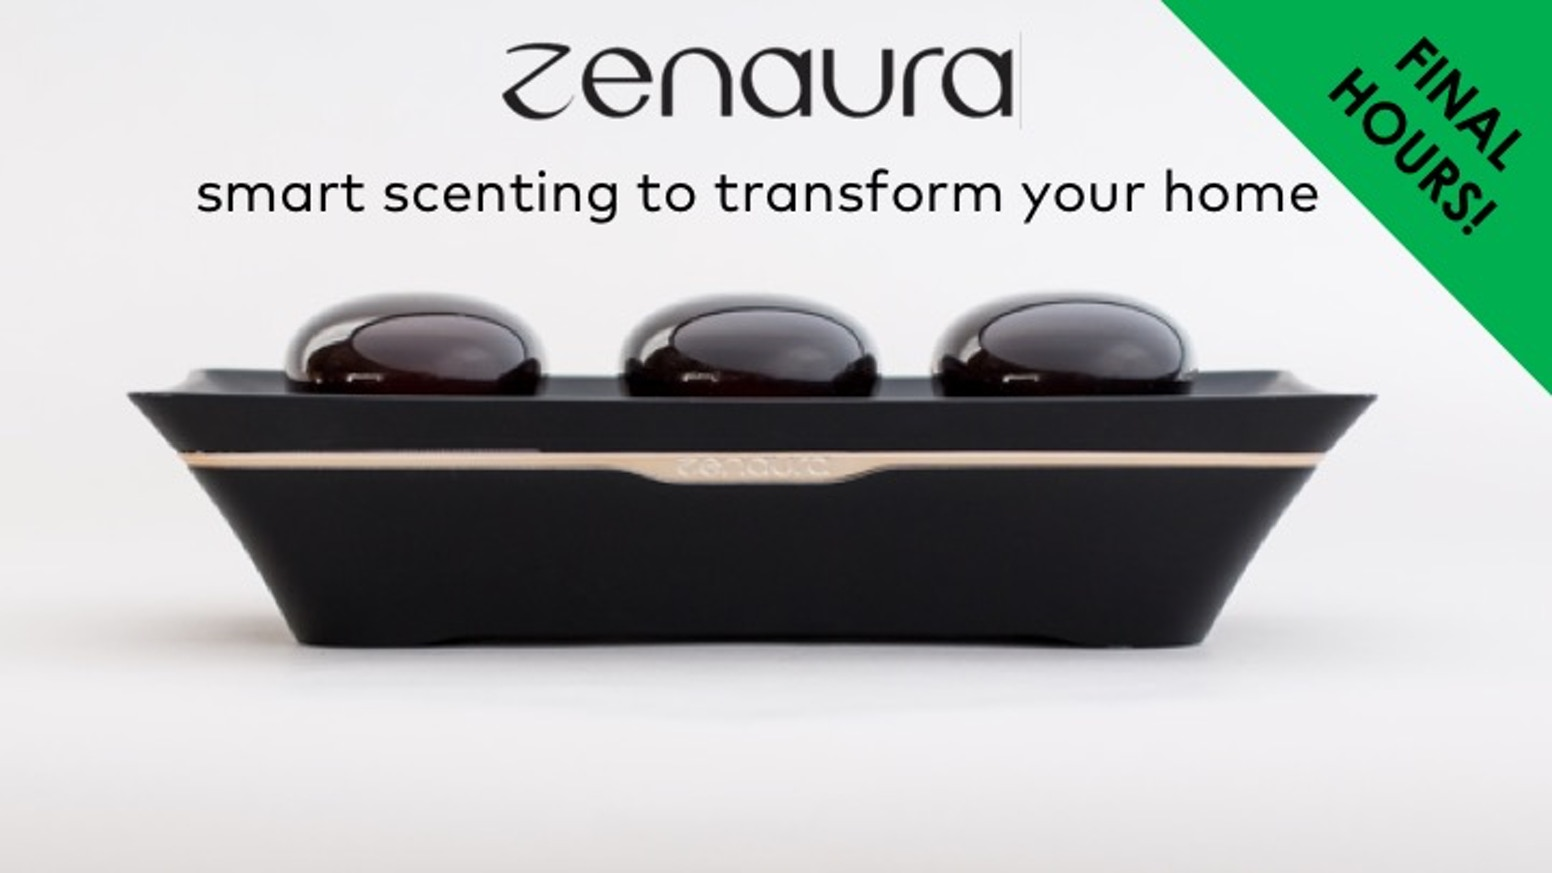 Zenaura Personalised Smart Scenting To Transform Your Home By Wiring Products Help Ensure That Will Be Ready For The Kickstarter